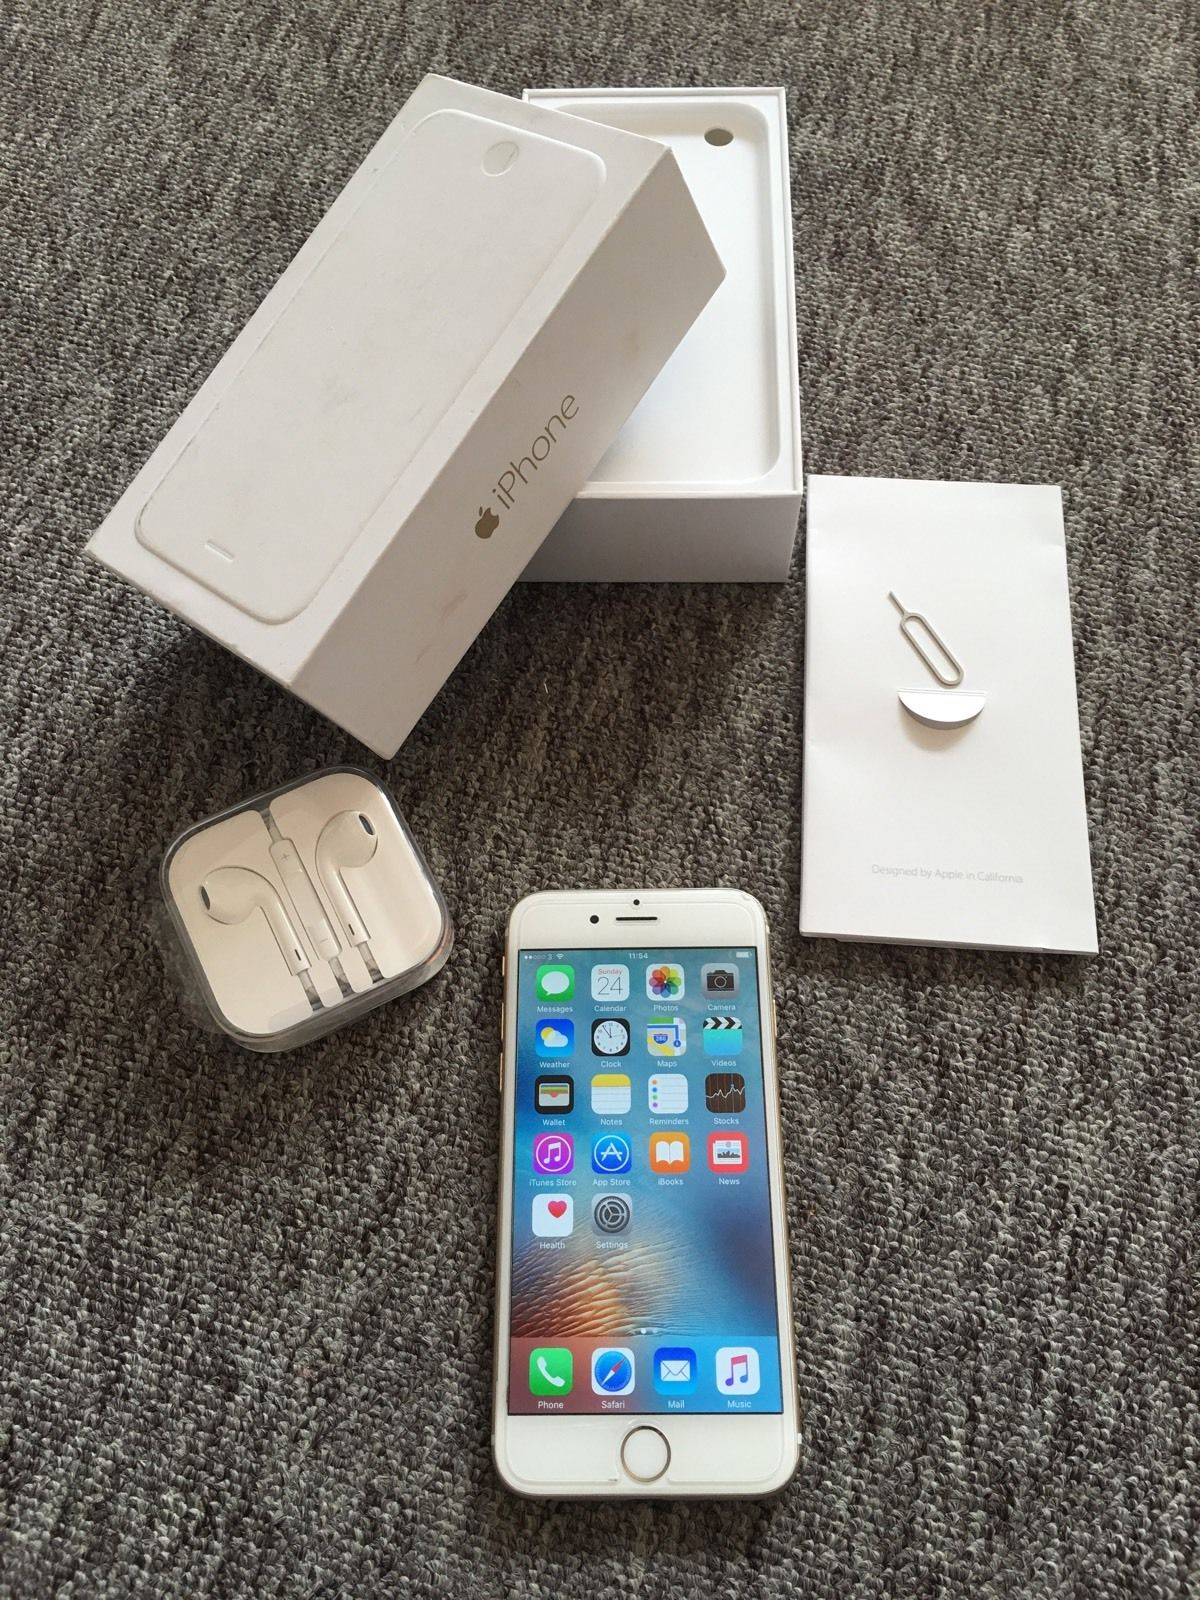 Iphone 6 128gb gold Desbloqueado